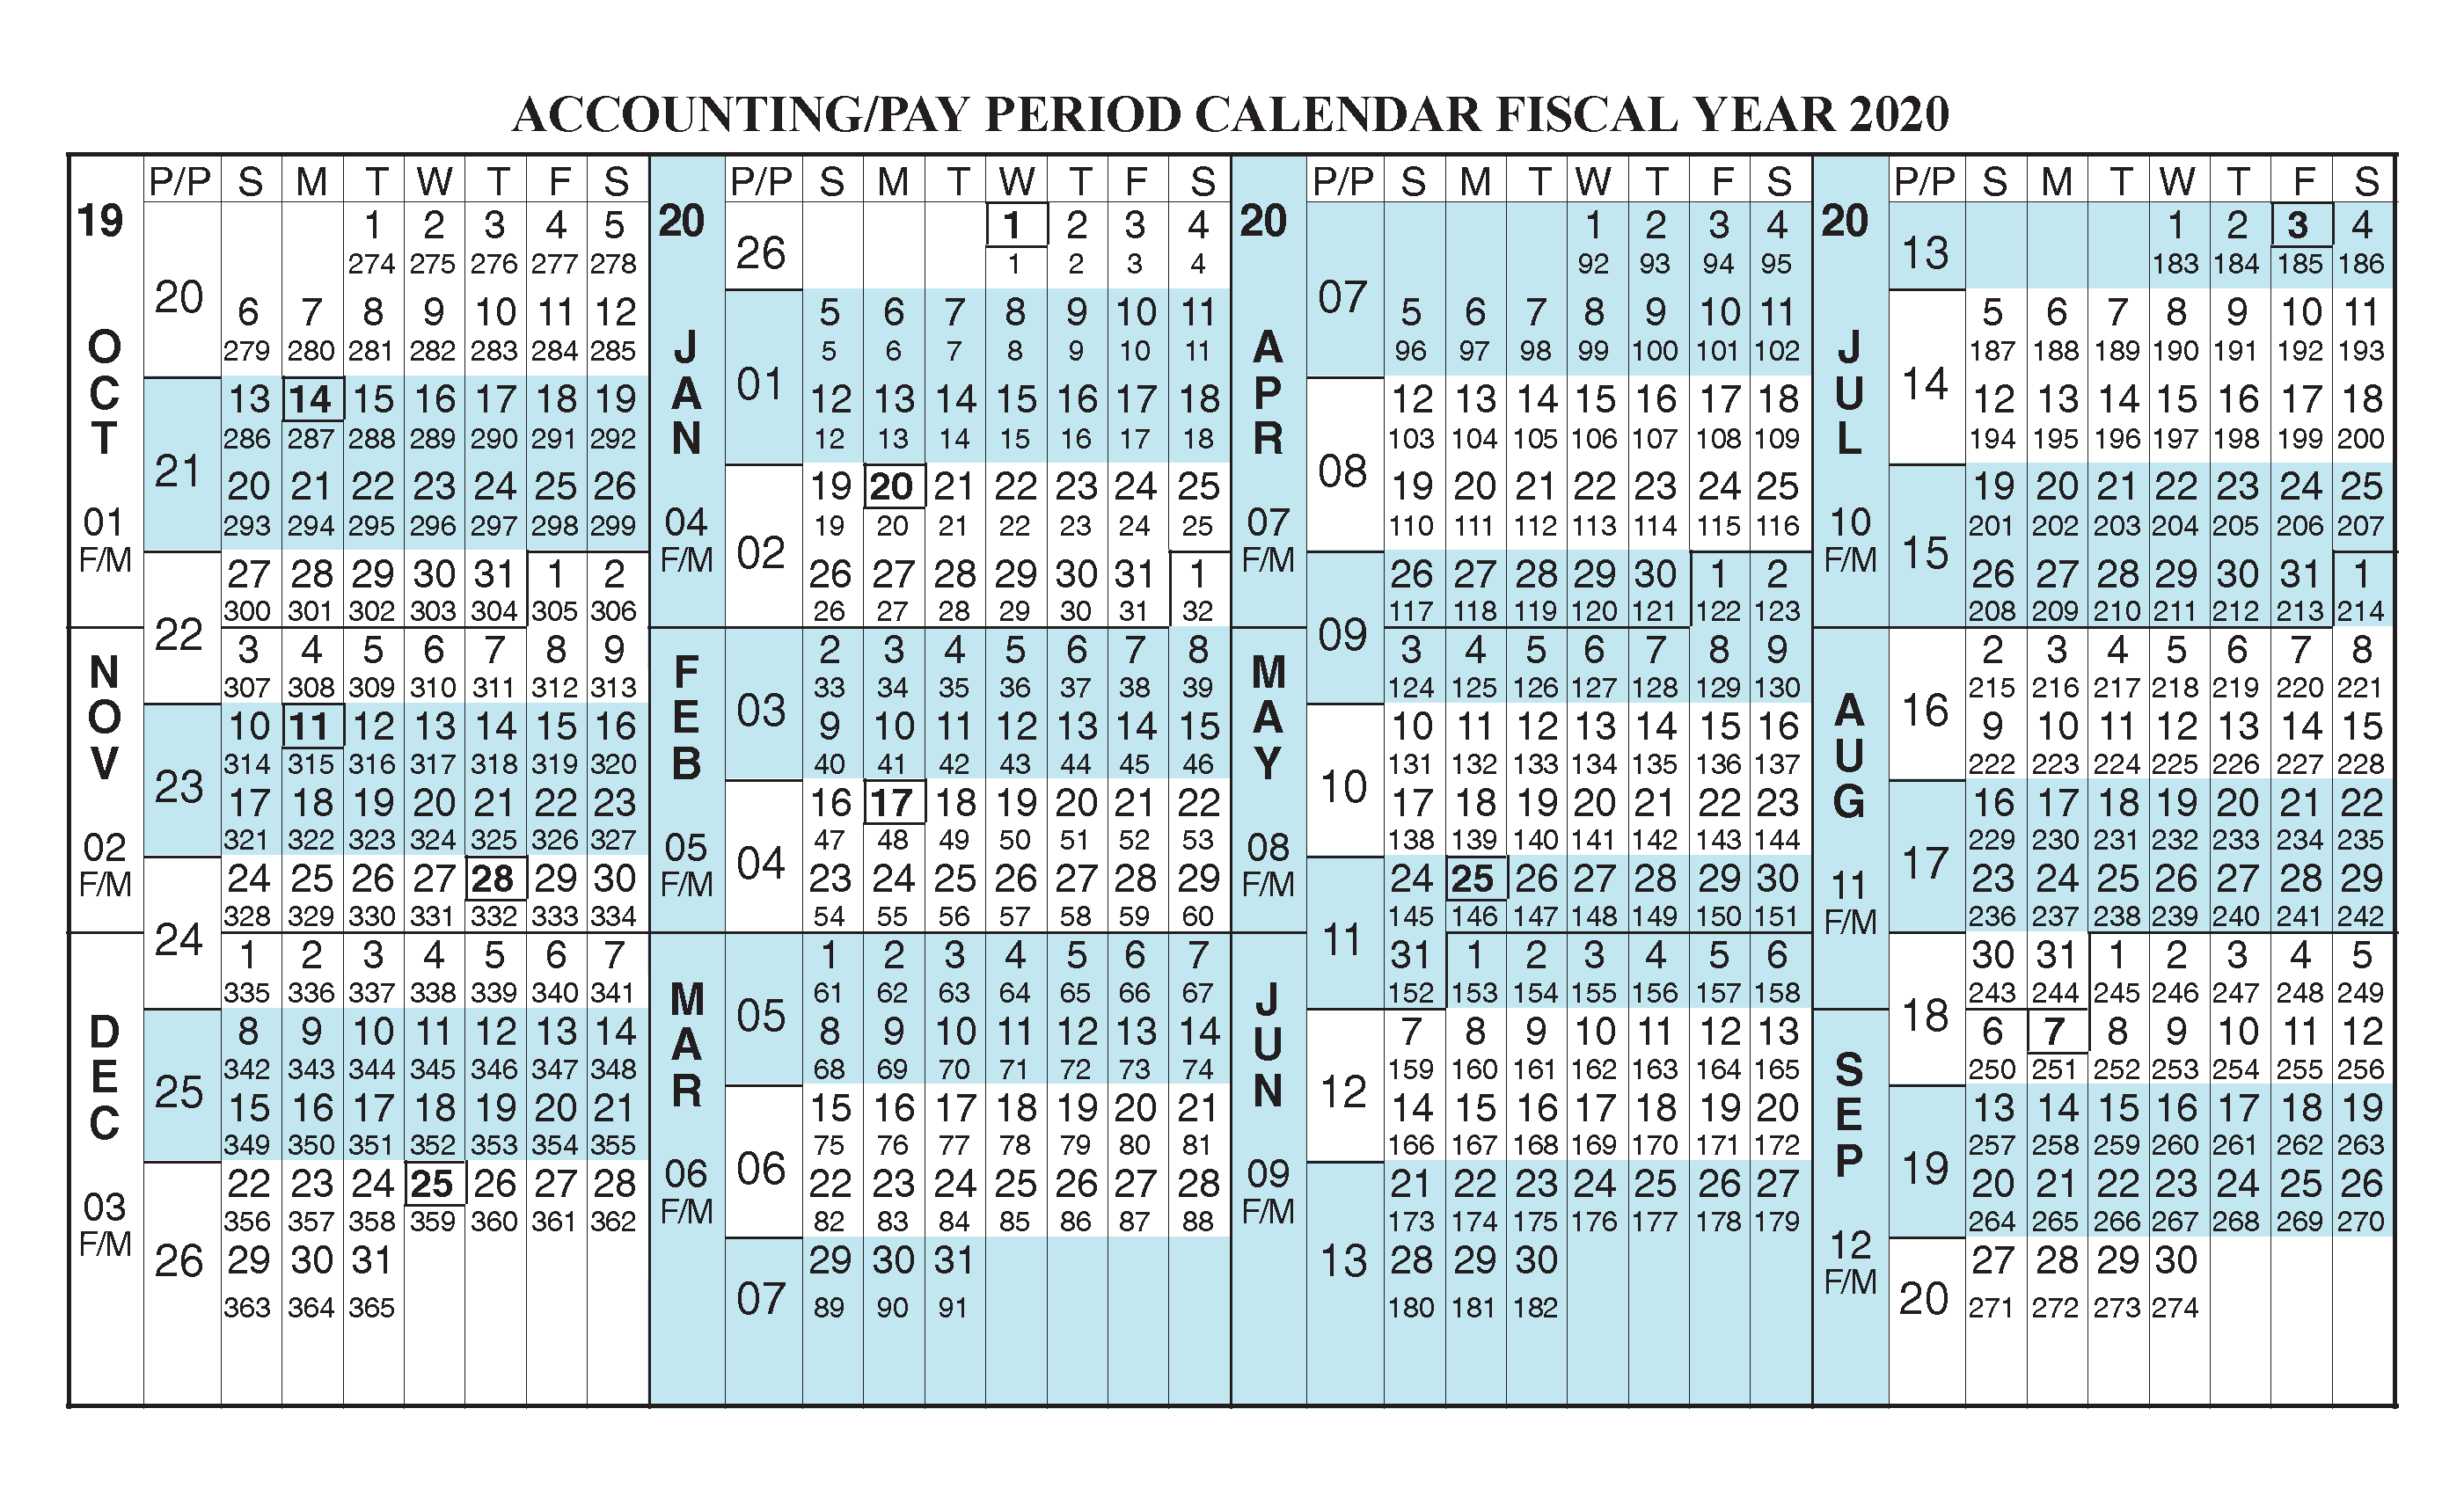 Weekly Pay Period Calendar 2020 Payroll Calendar 2020 Fiscal Year Calendar [ Oct 2019   Sep 2020